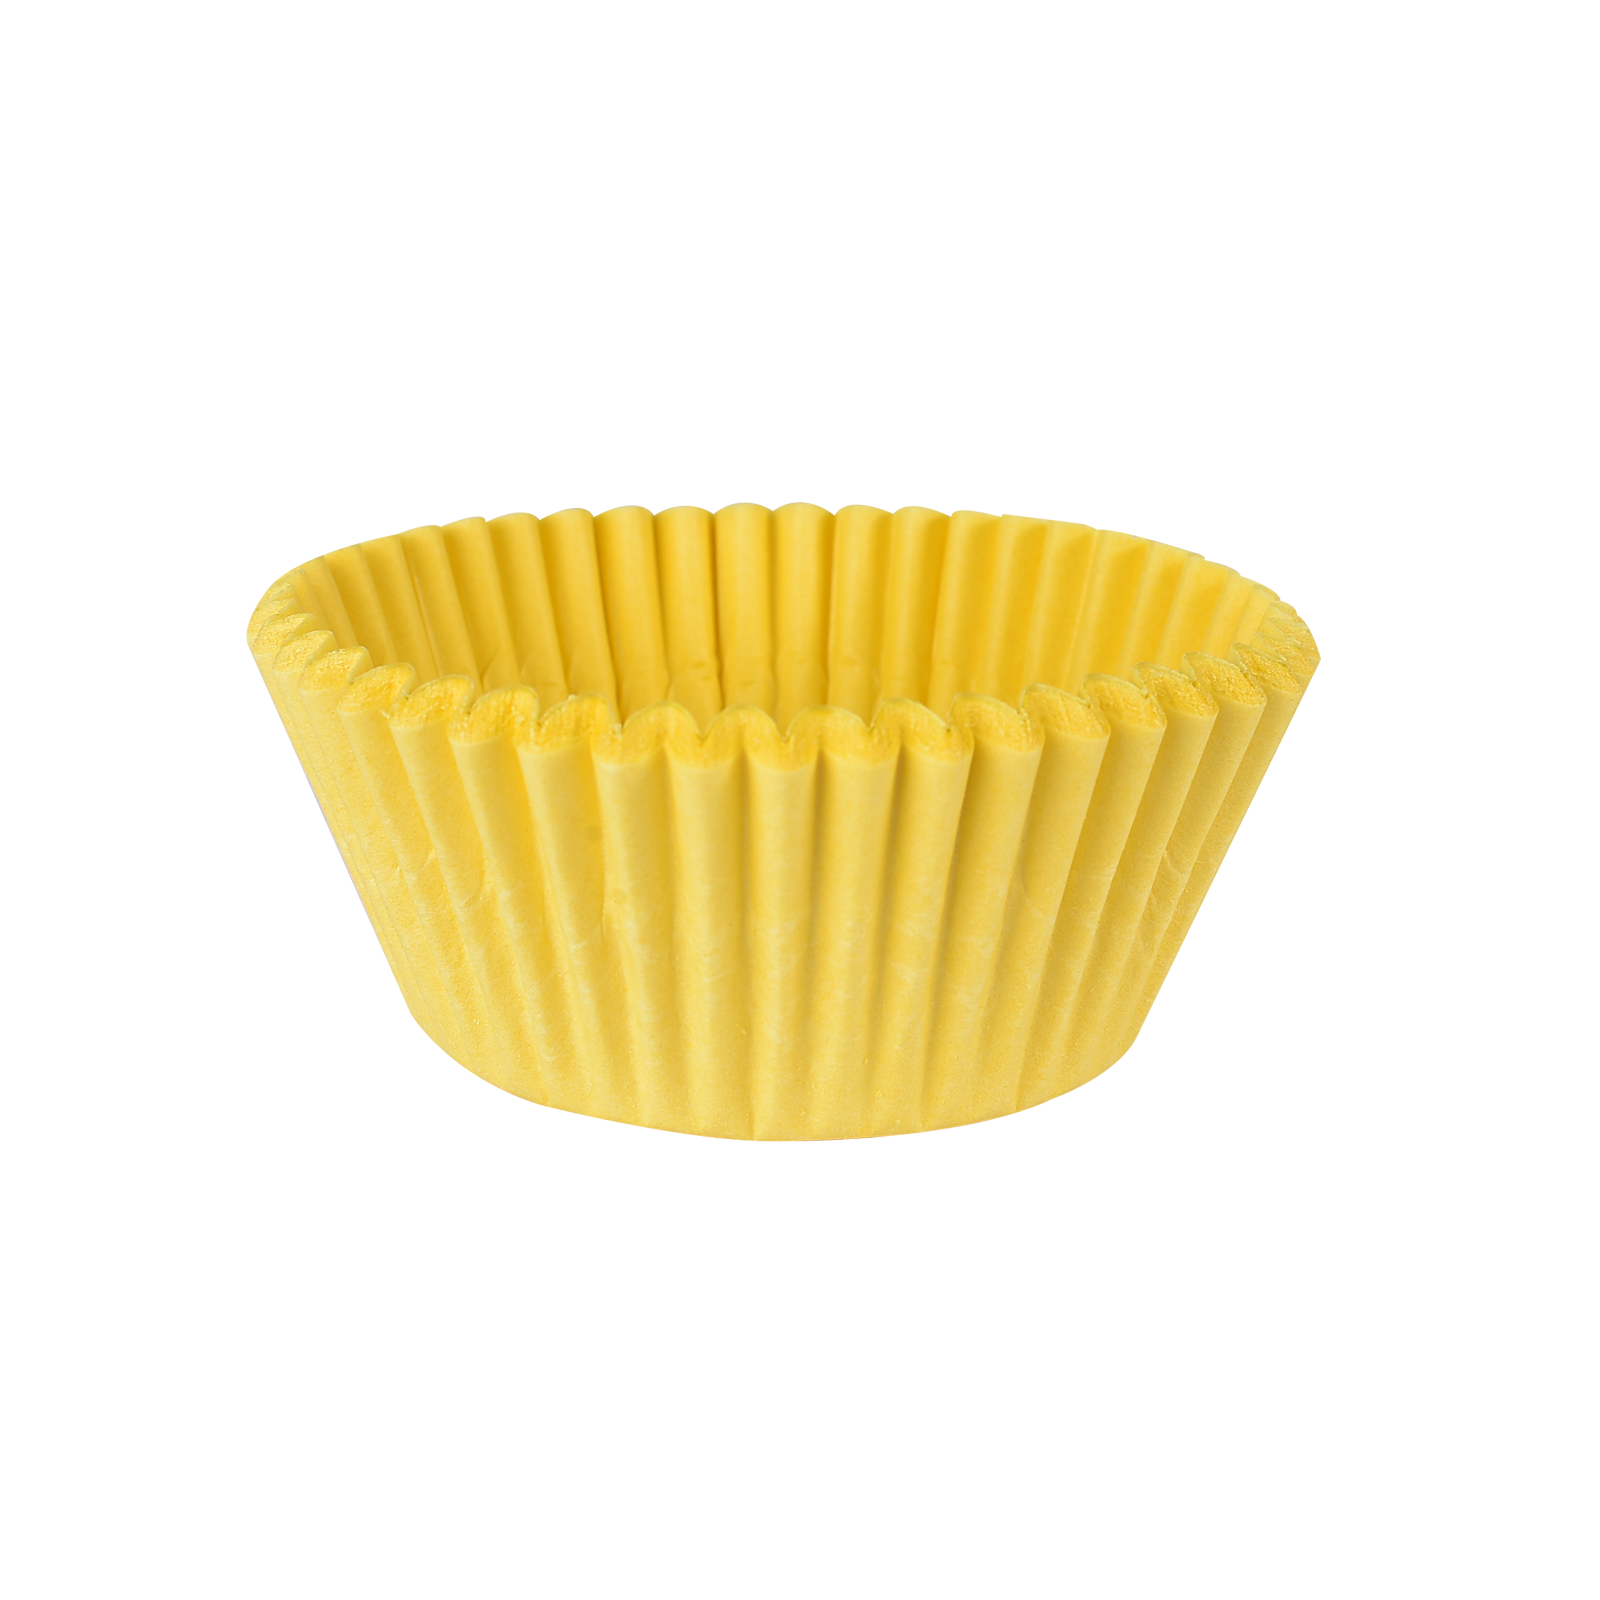 Paper Cup C9 AJC Yellow 5pc.png